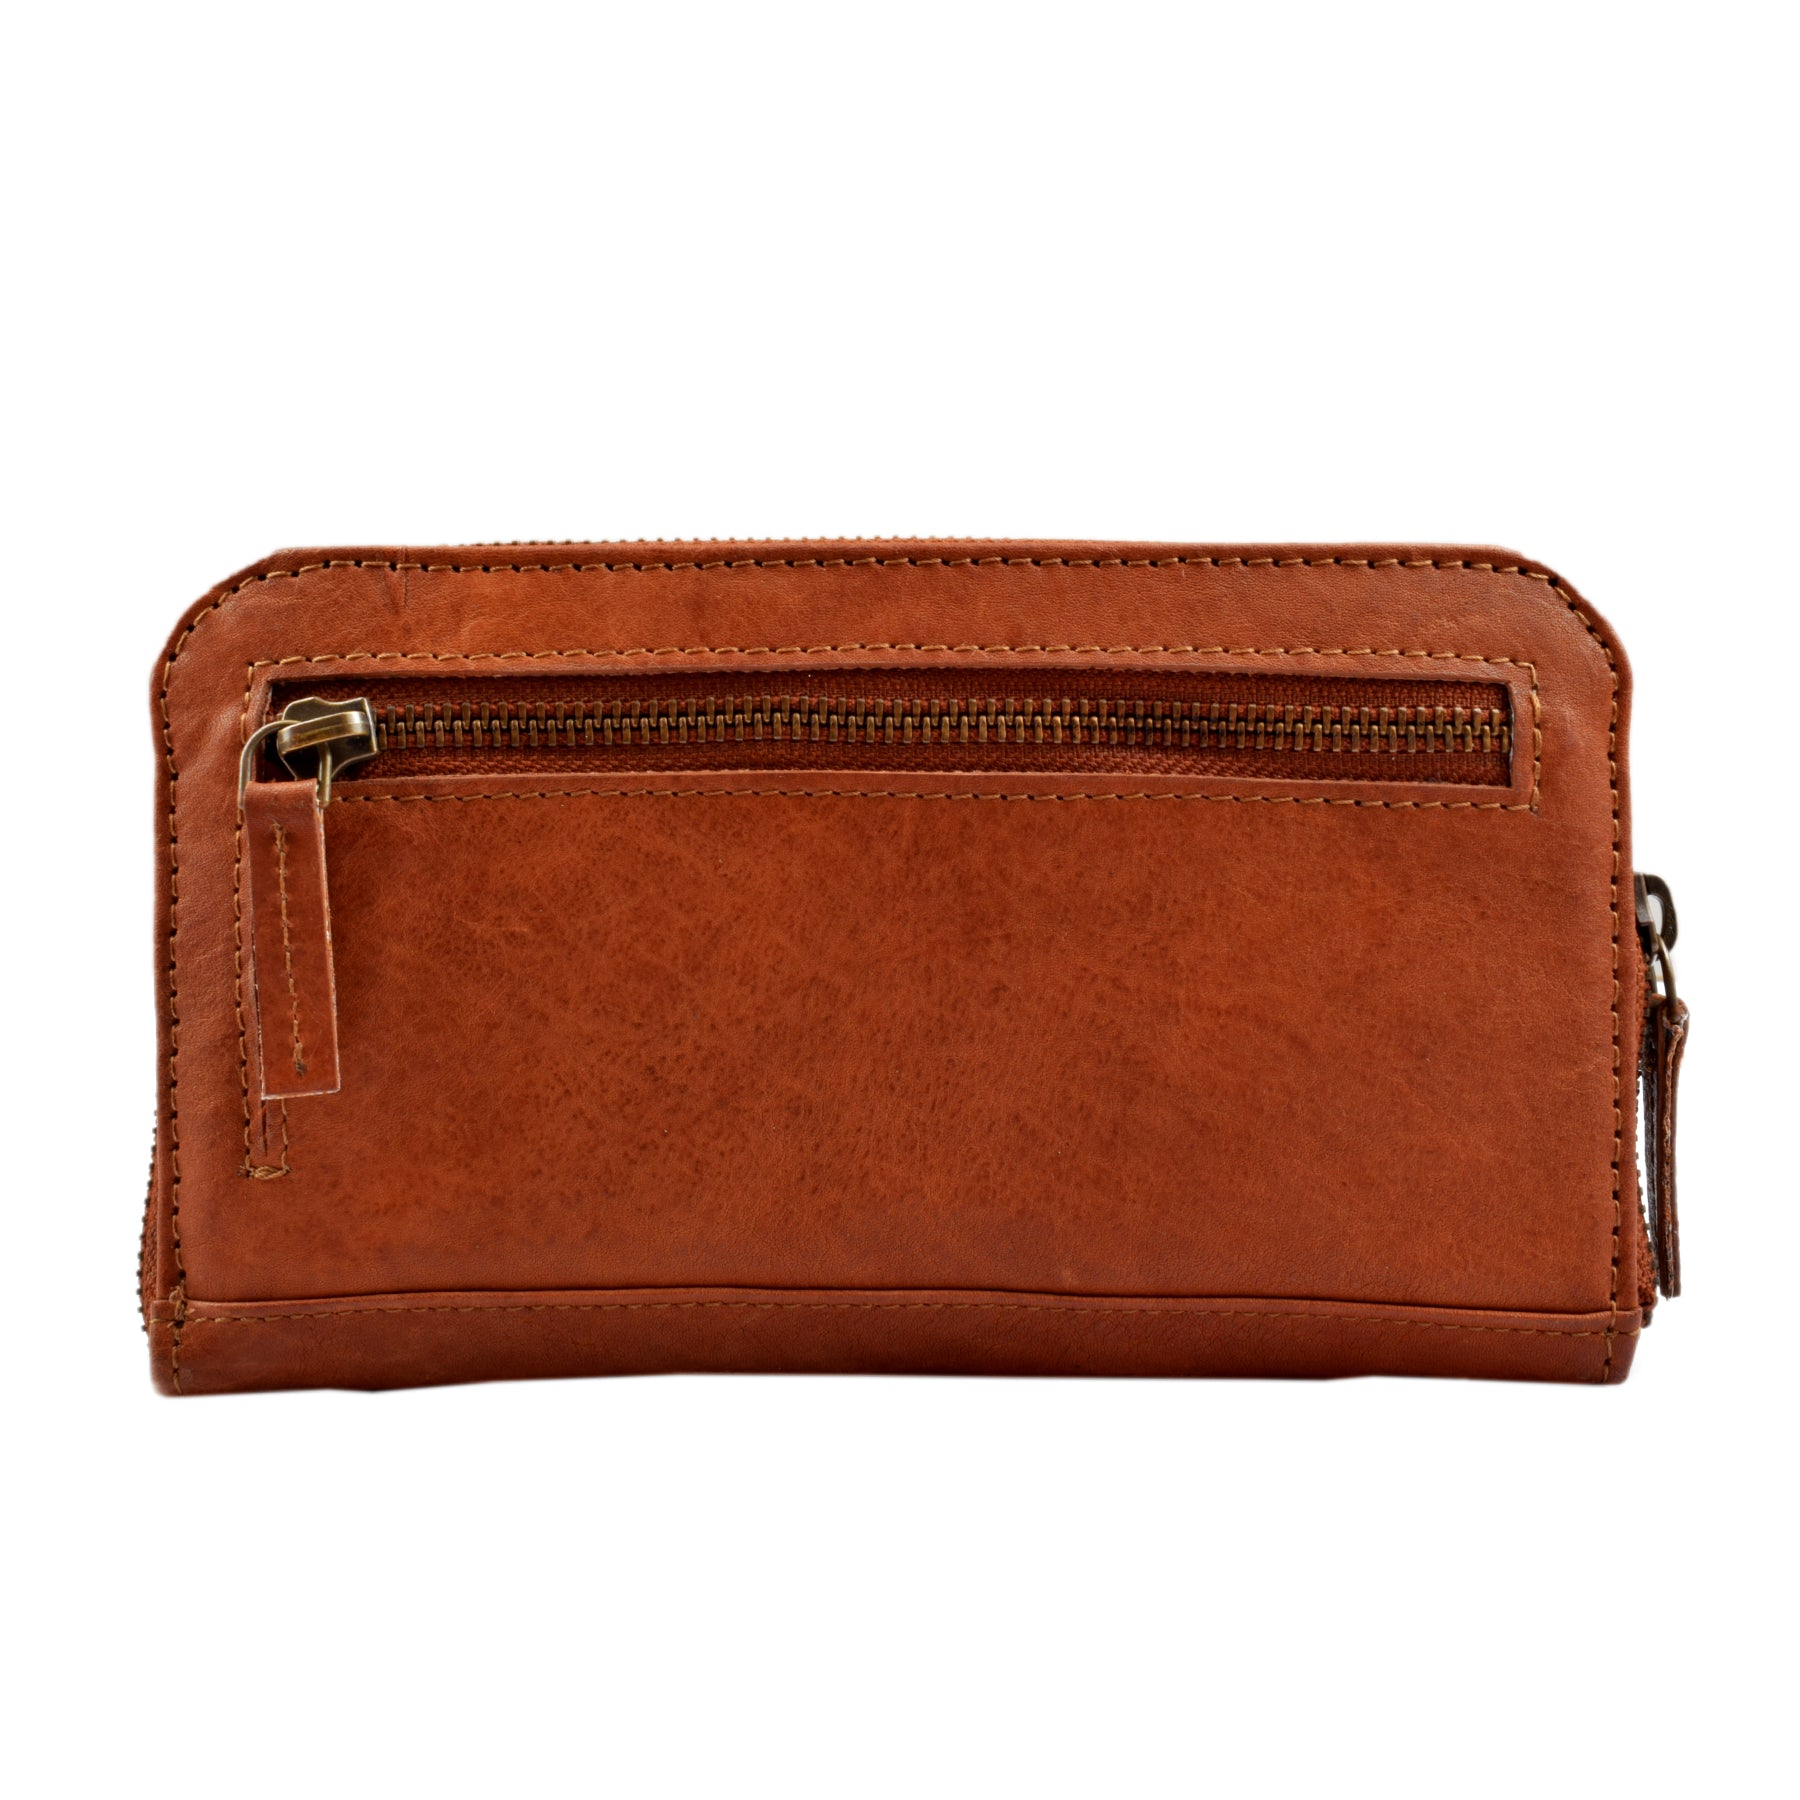 Ladies wallet, genuine leather